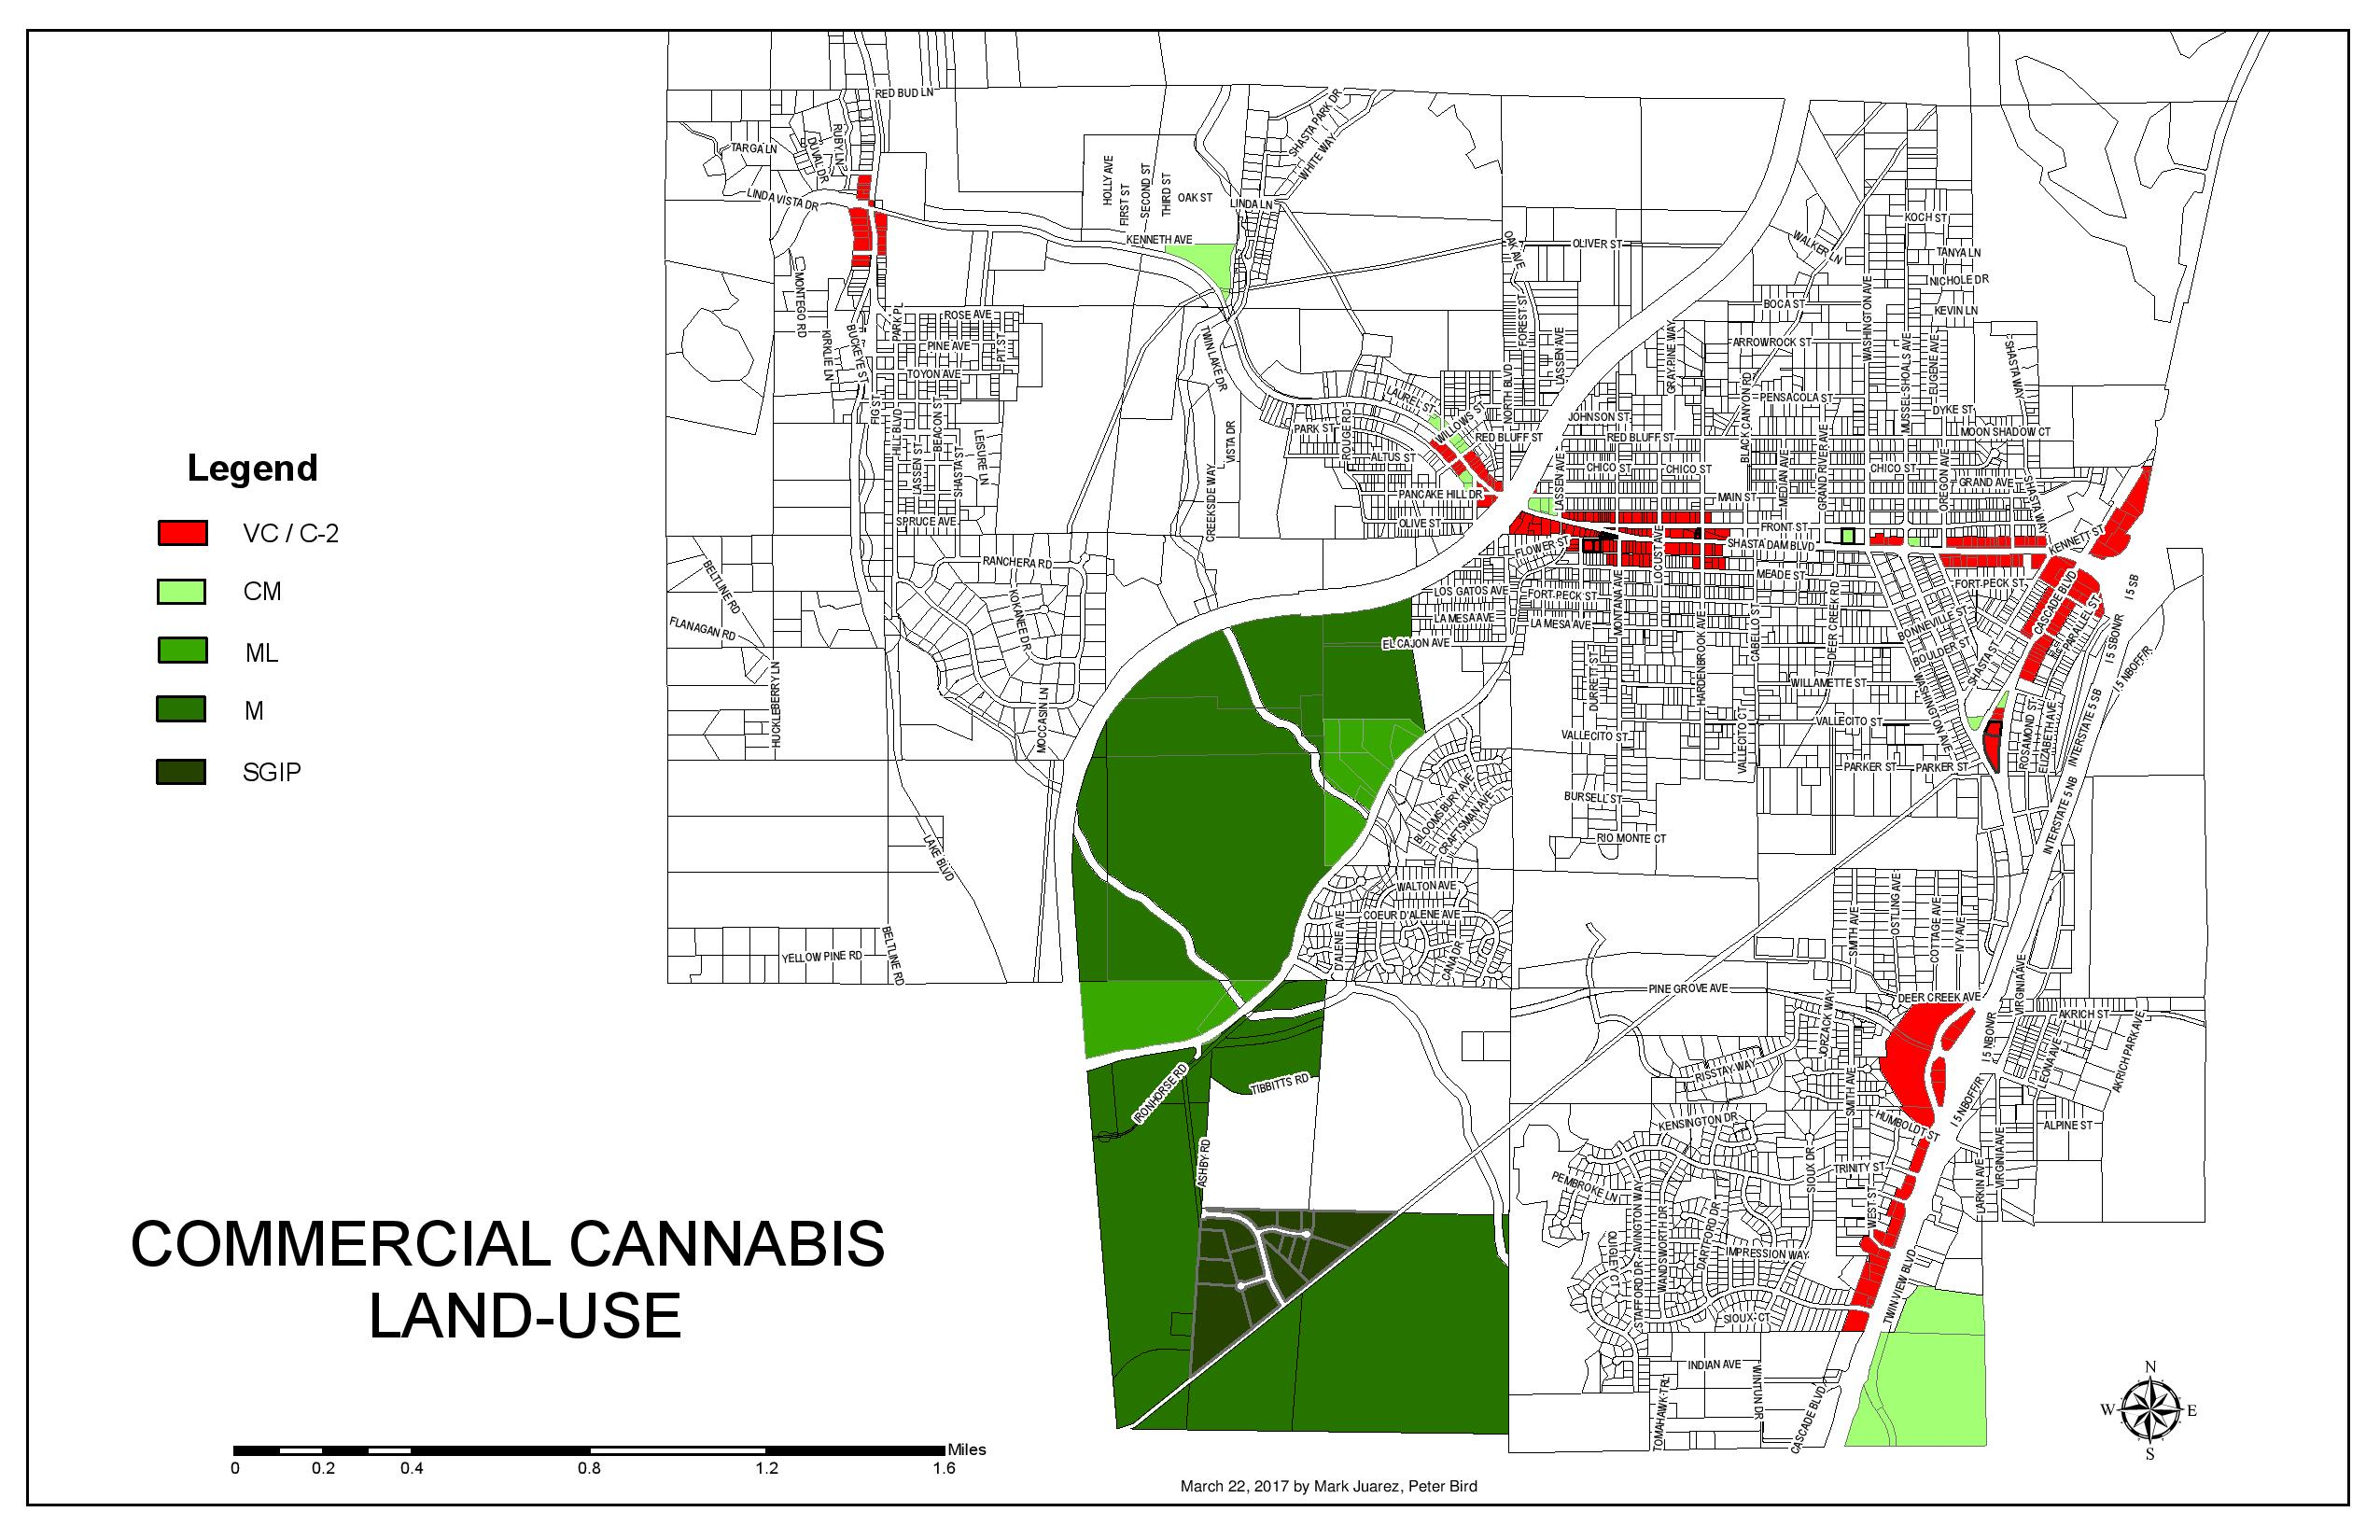 Commercial Cannabis Land-Use Final-page-001.jpg